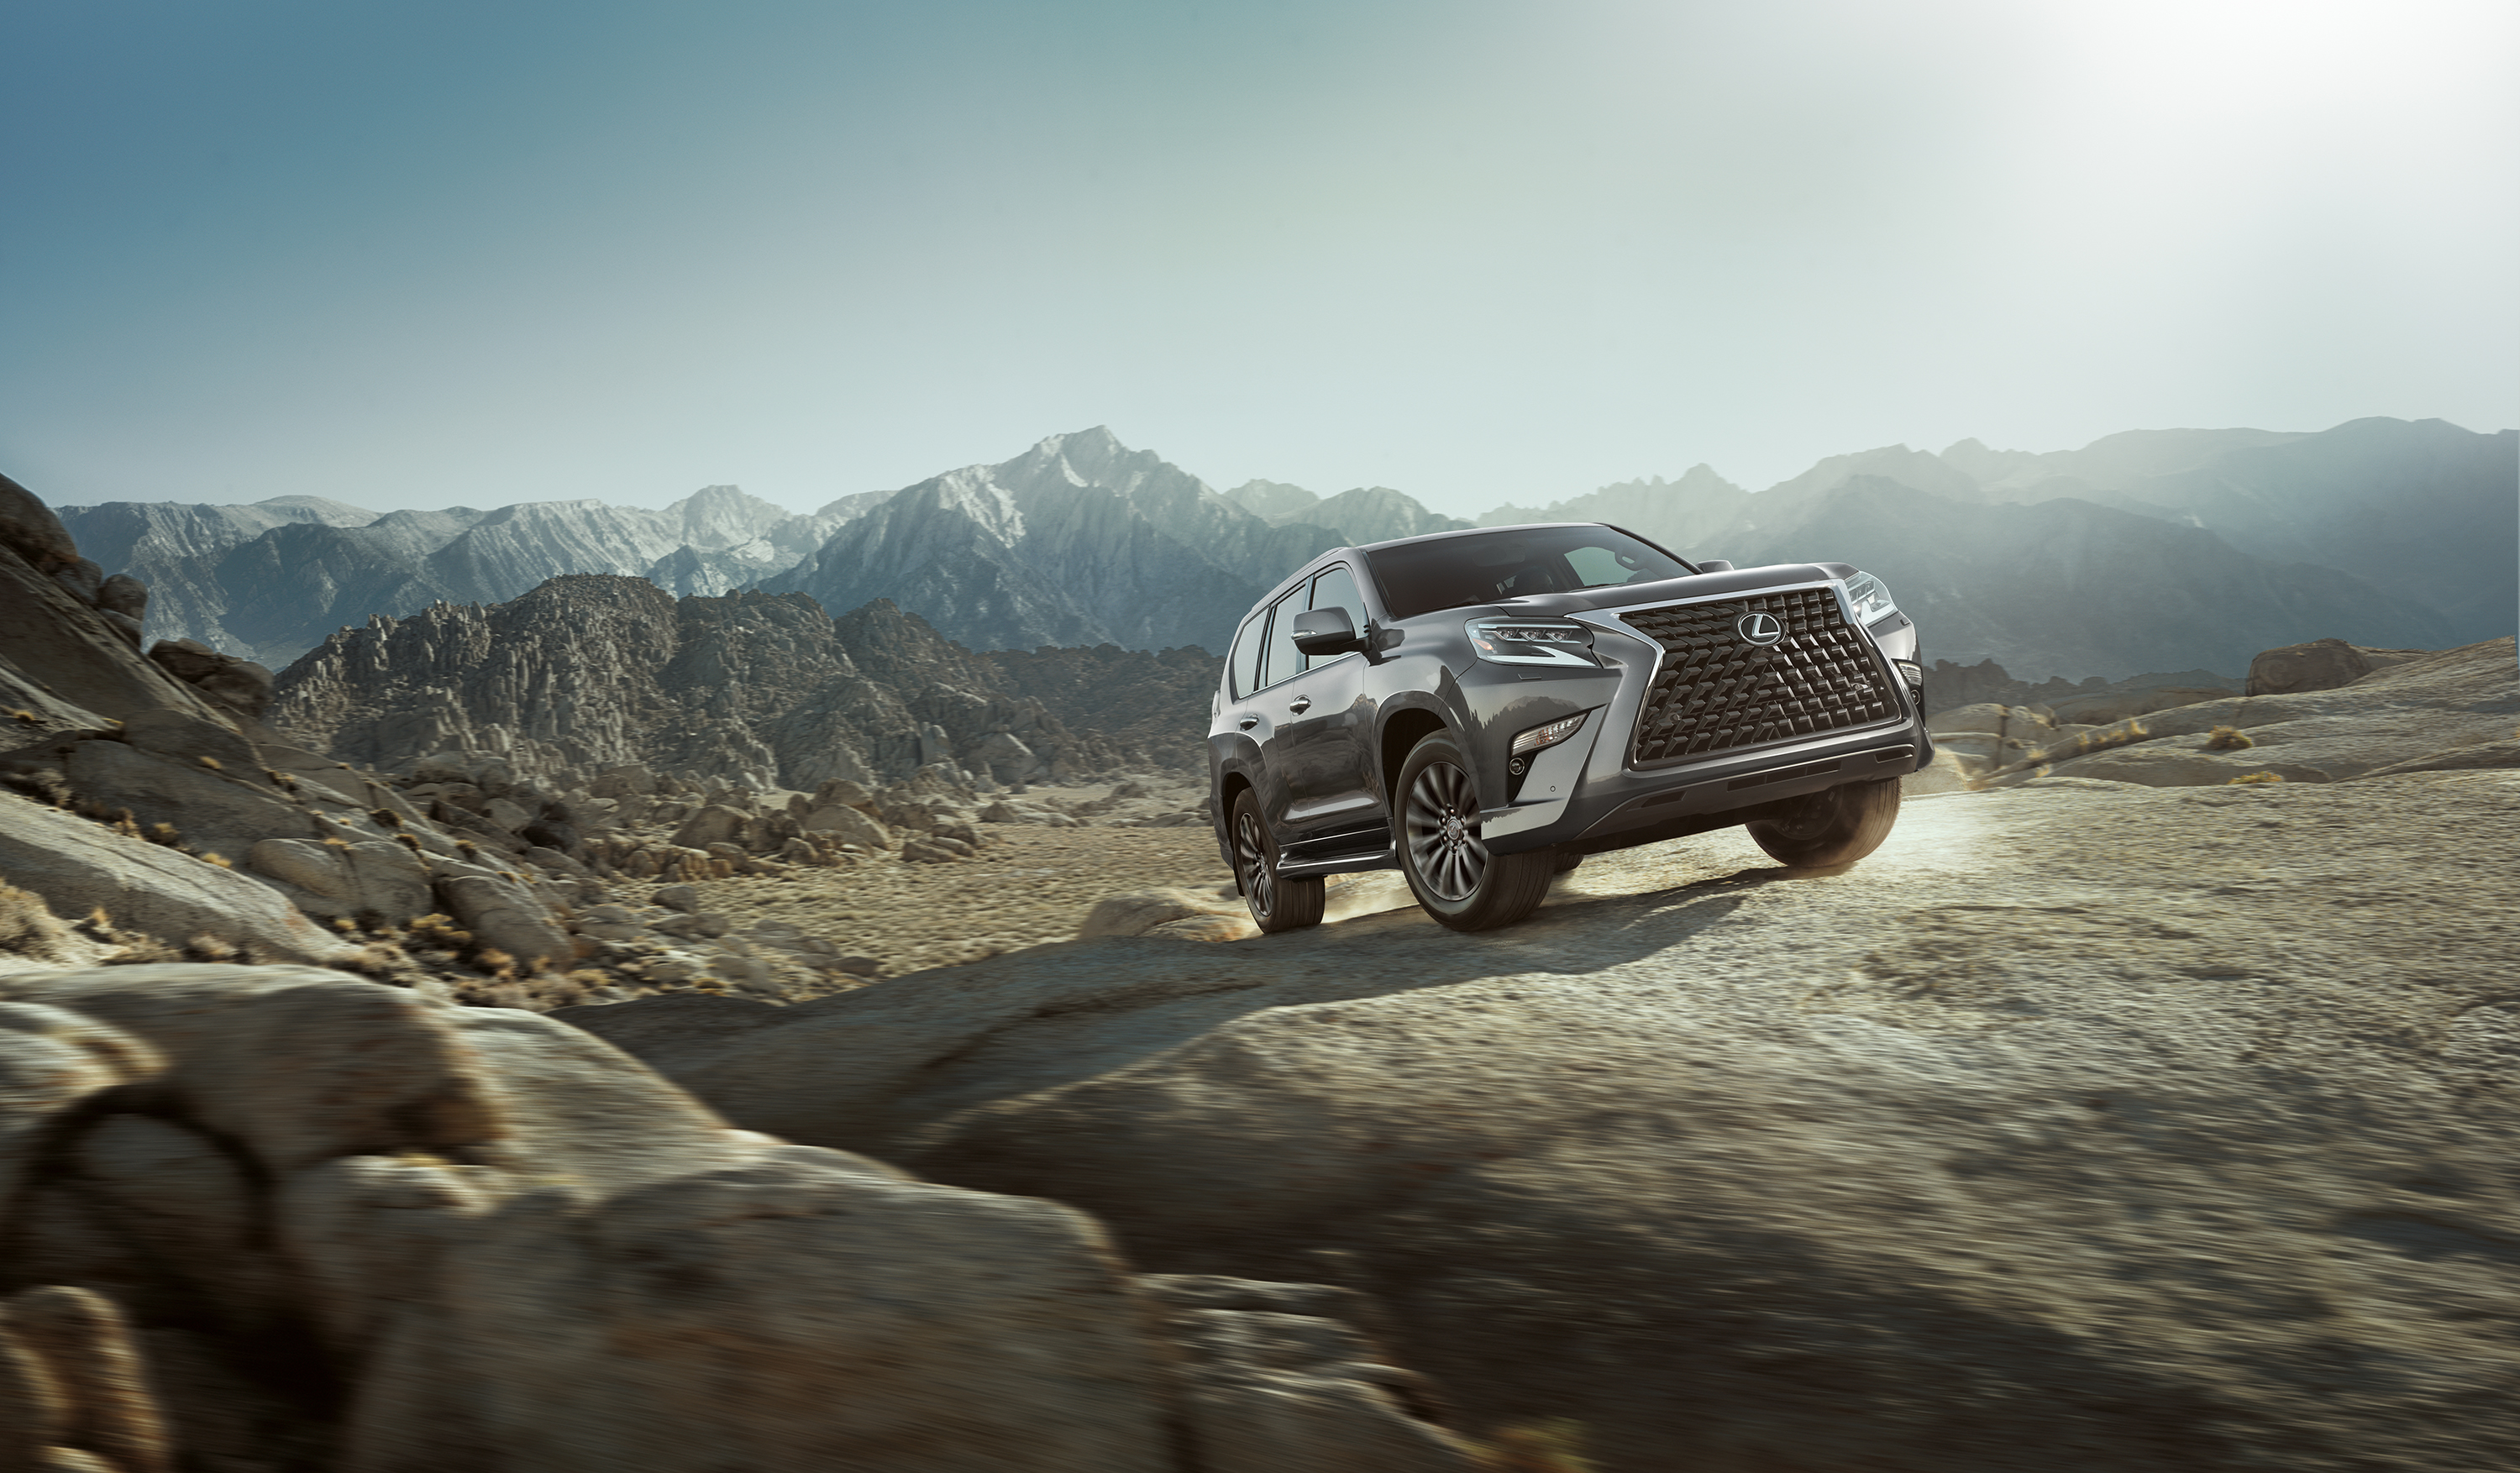 Latest and Greatest: 2020 Lexus GX 460 Adds Standard Lexus Safety